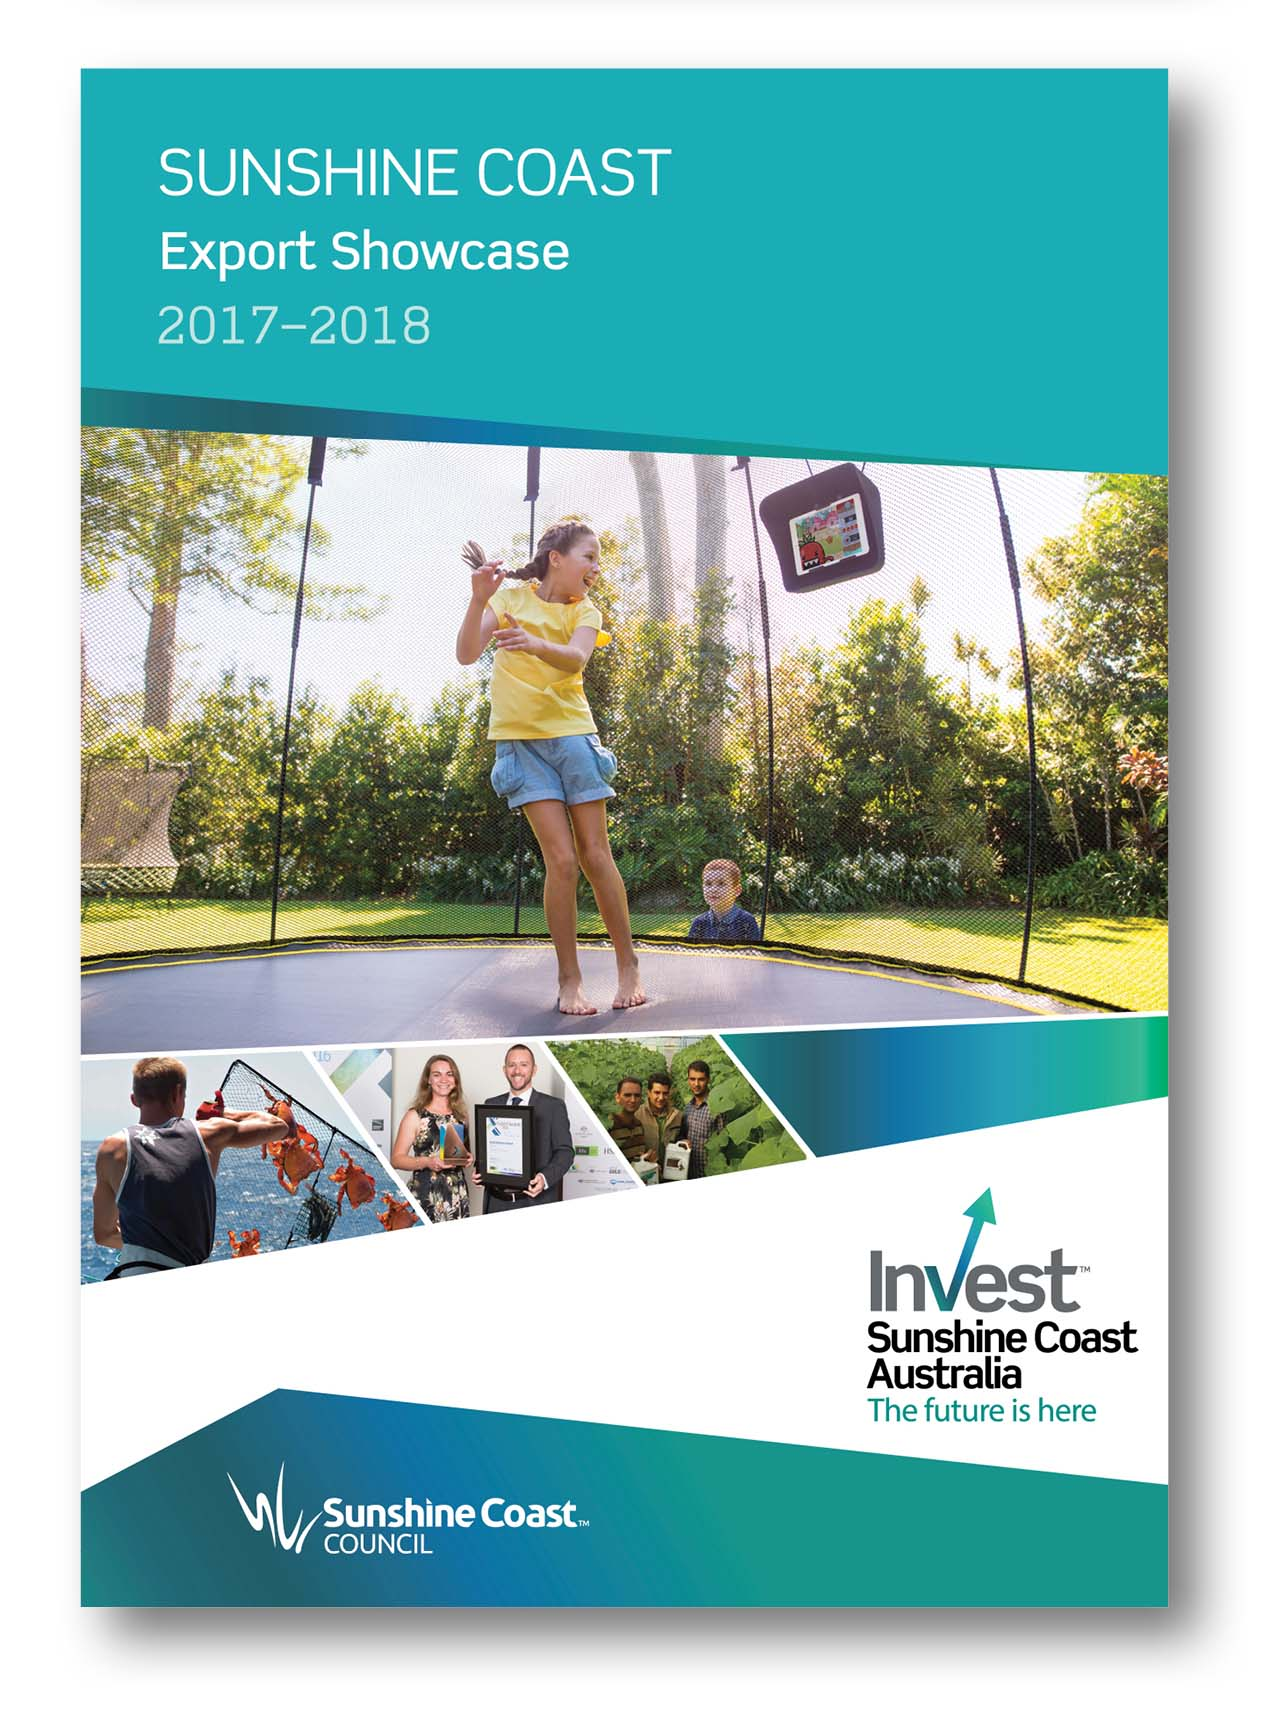 ExportShowcase_ebook_front-cover-image.jpg